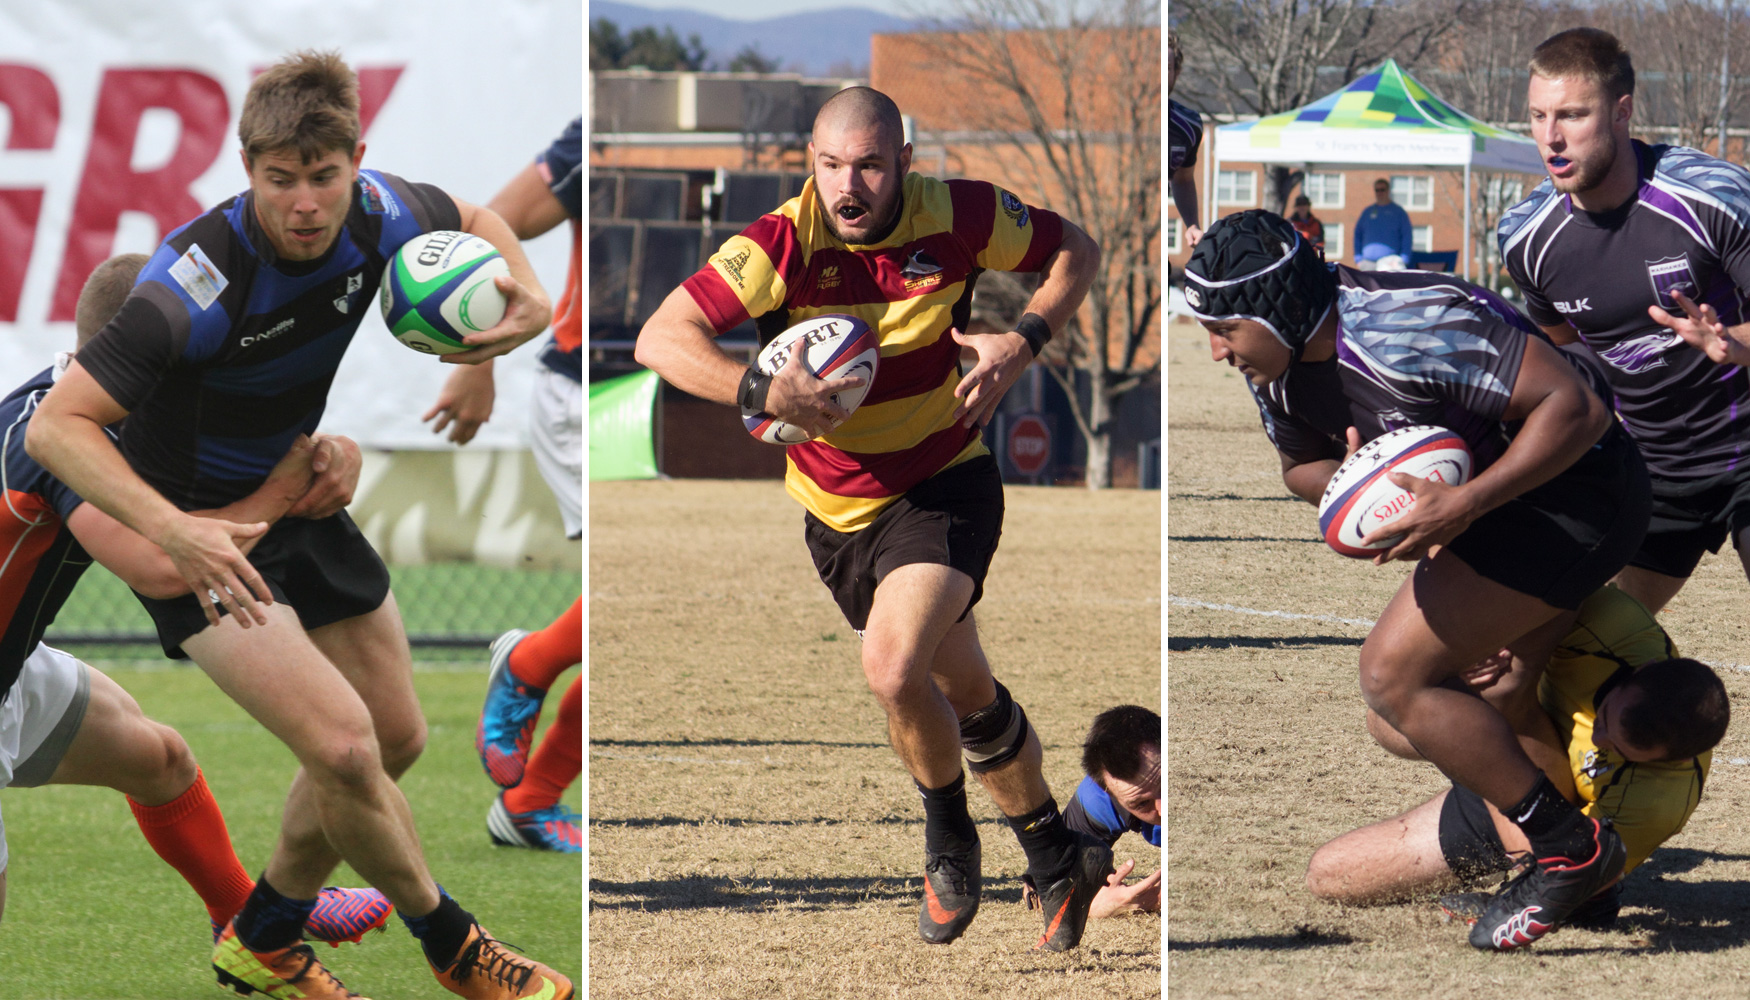 USA College 7s: Increased Men's DII field at College 7s shaping up to be toughest yet